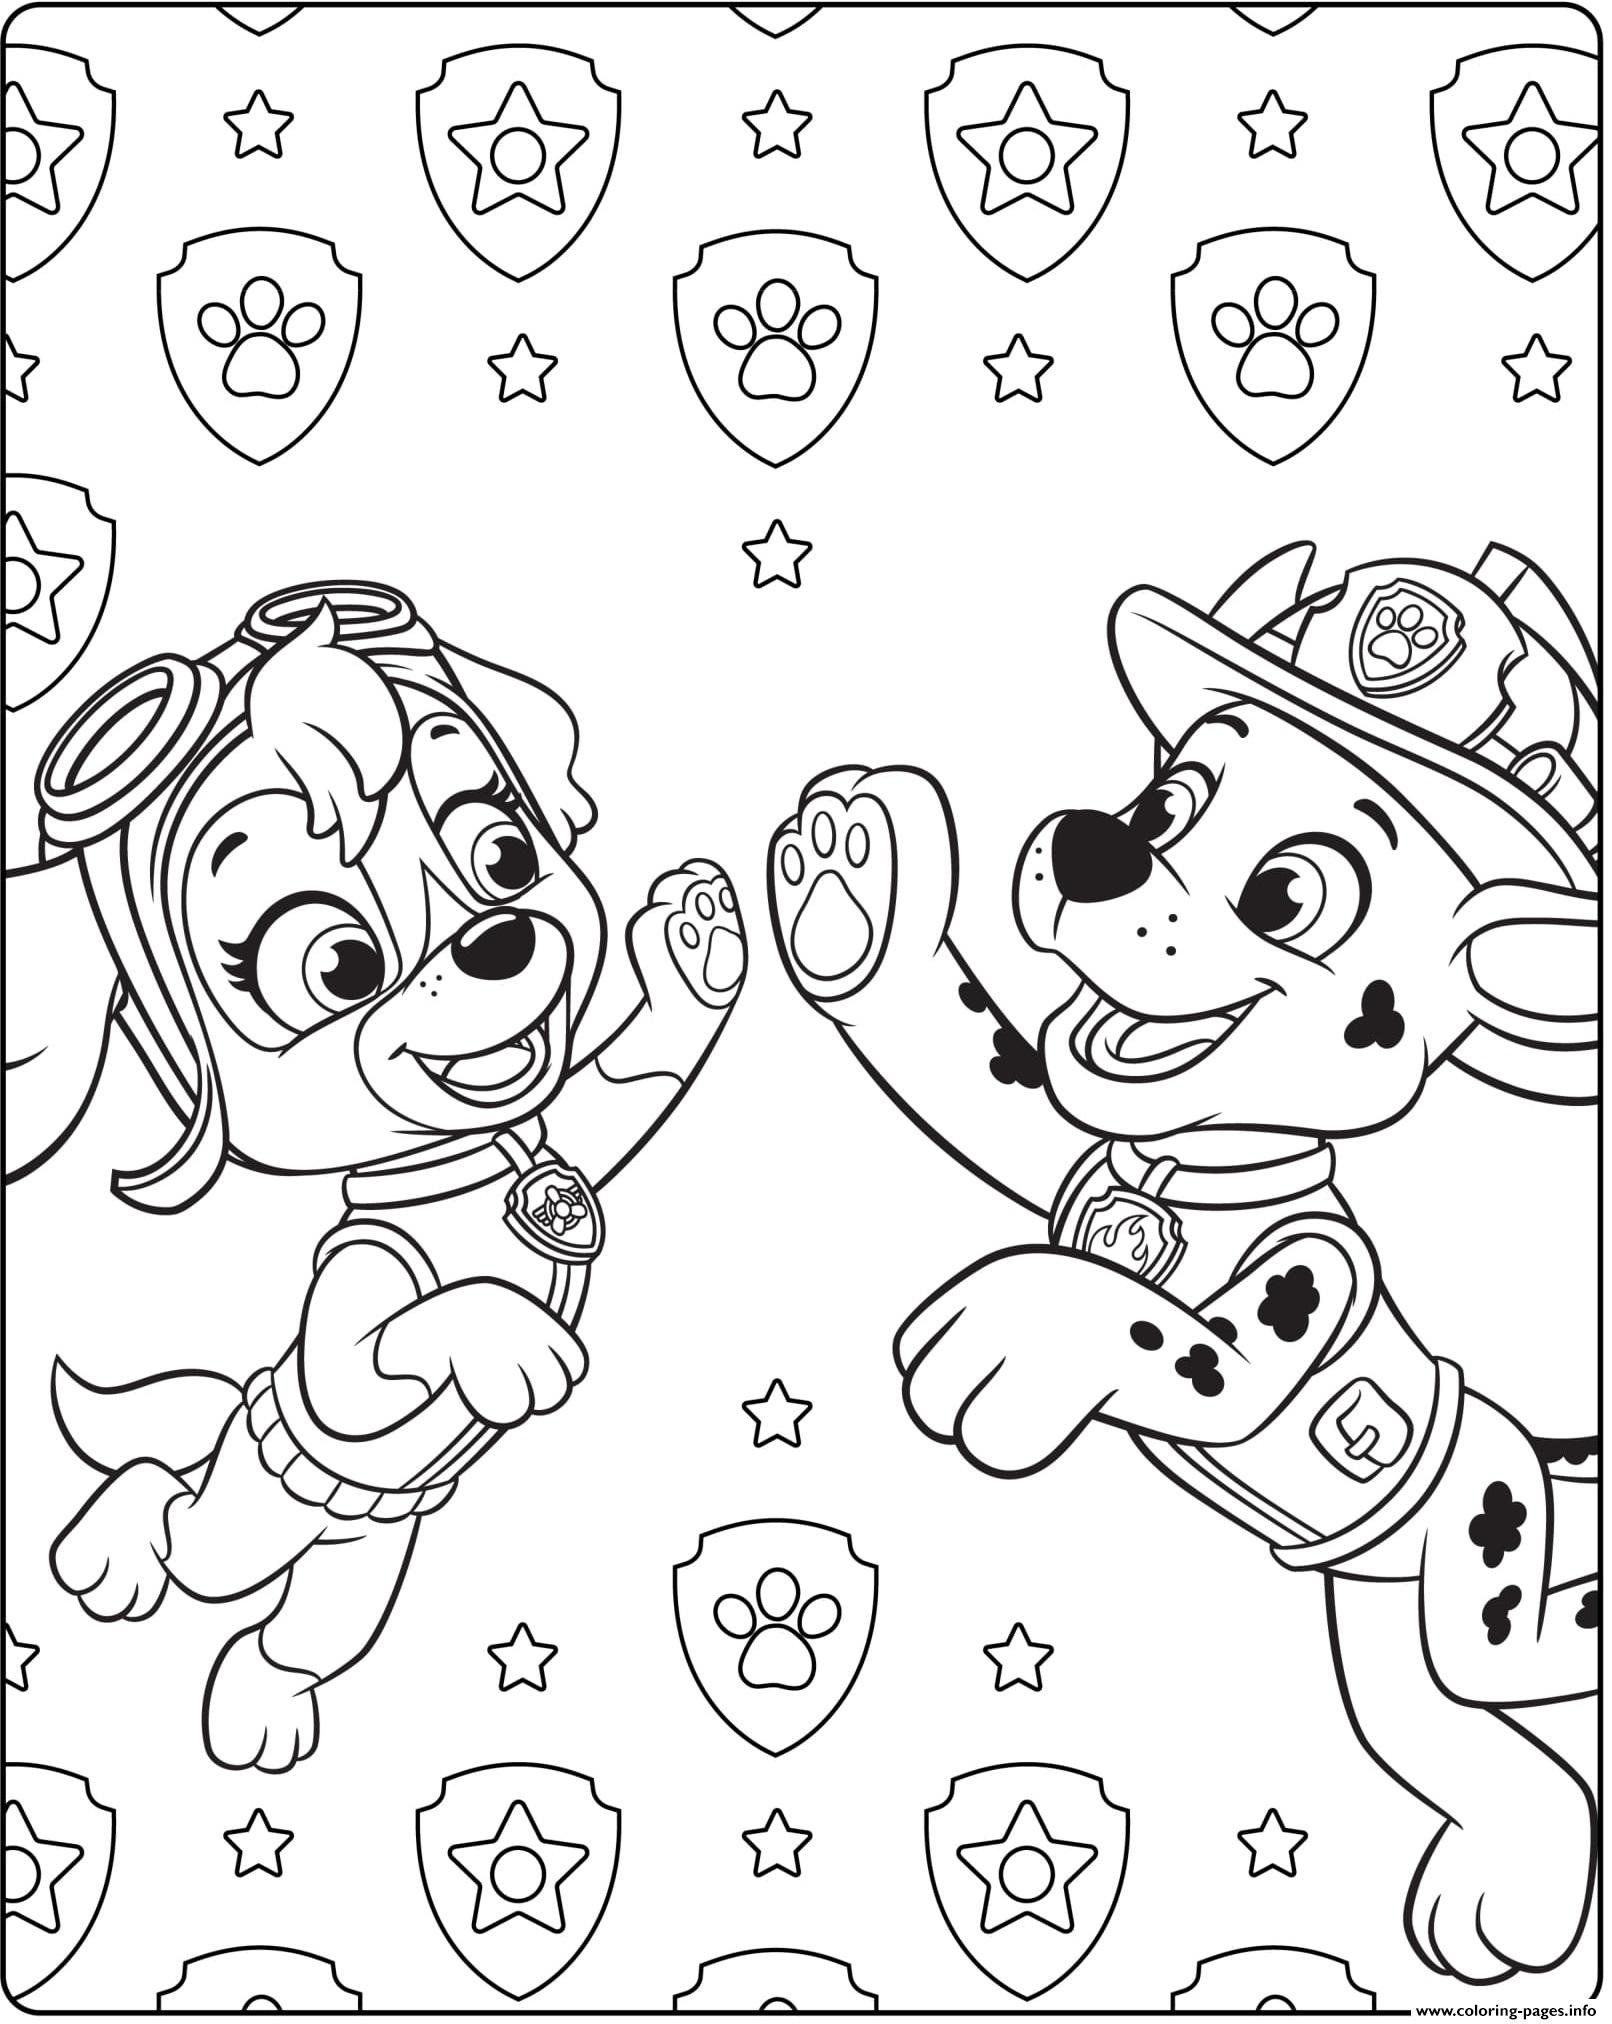 Paw Patrol Coloring Sheets Paw Patrol Ultimate Rescue Skye Marshall Coloring Pages Paw Patrol Coloring Disney Coloring Pages Paw Patrol Coloring Pages